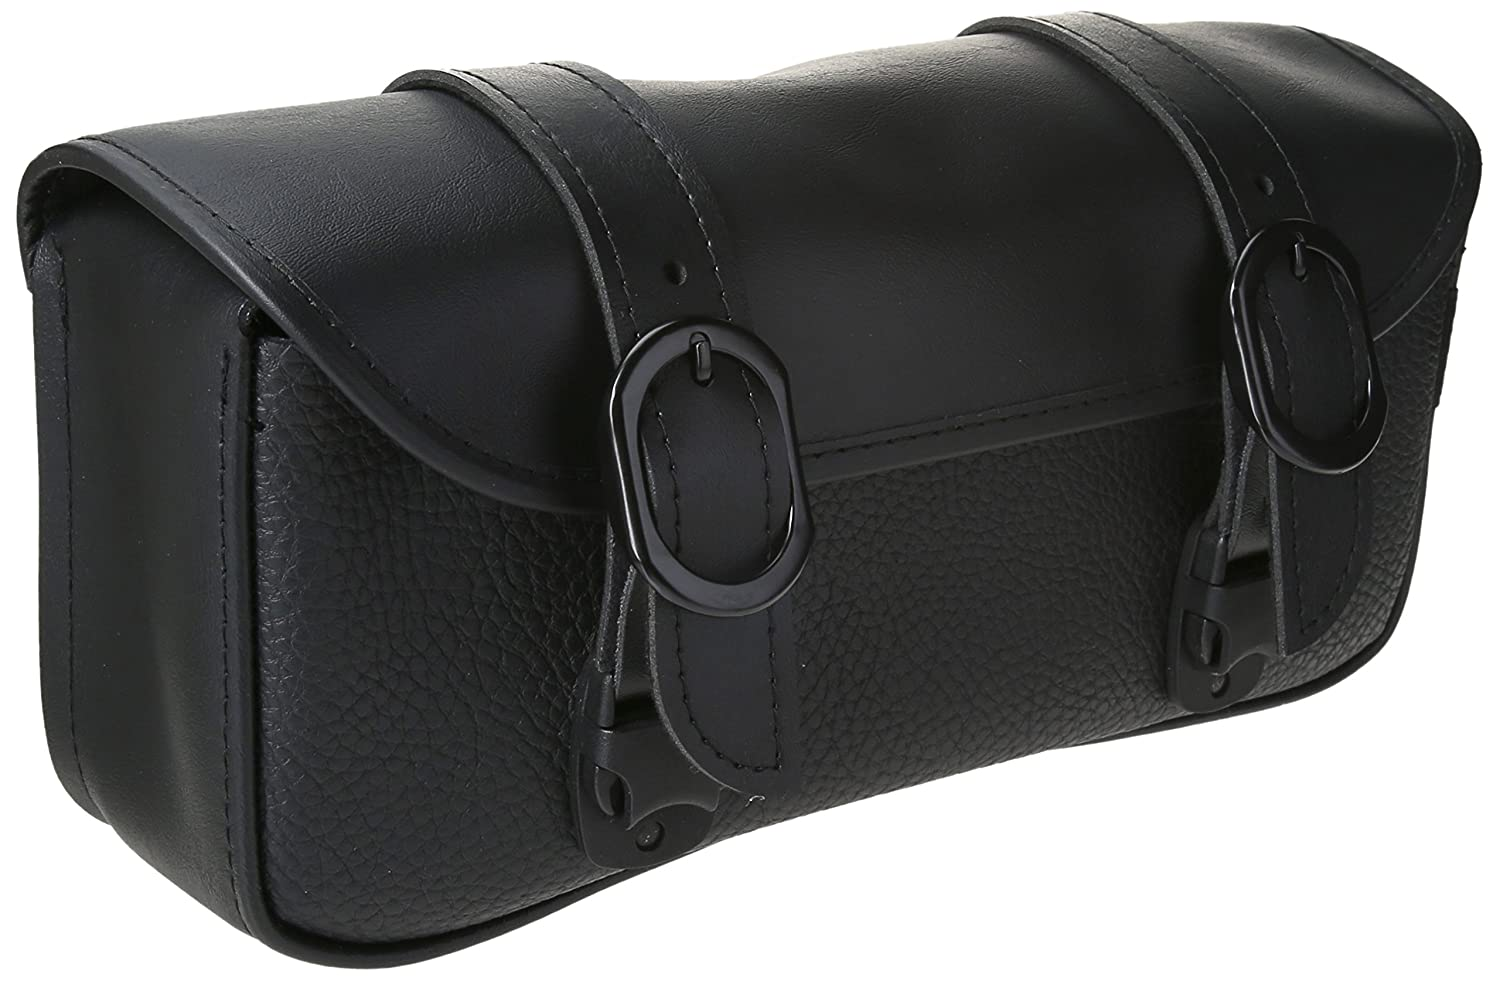 Dowco Willie /& Max 58282-20 Black Magic Series: Synthetic Leather Motorcycle Tool Pouch Universal Fit 2.5 Liter Capacity Black